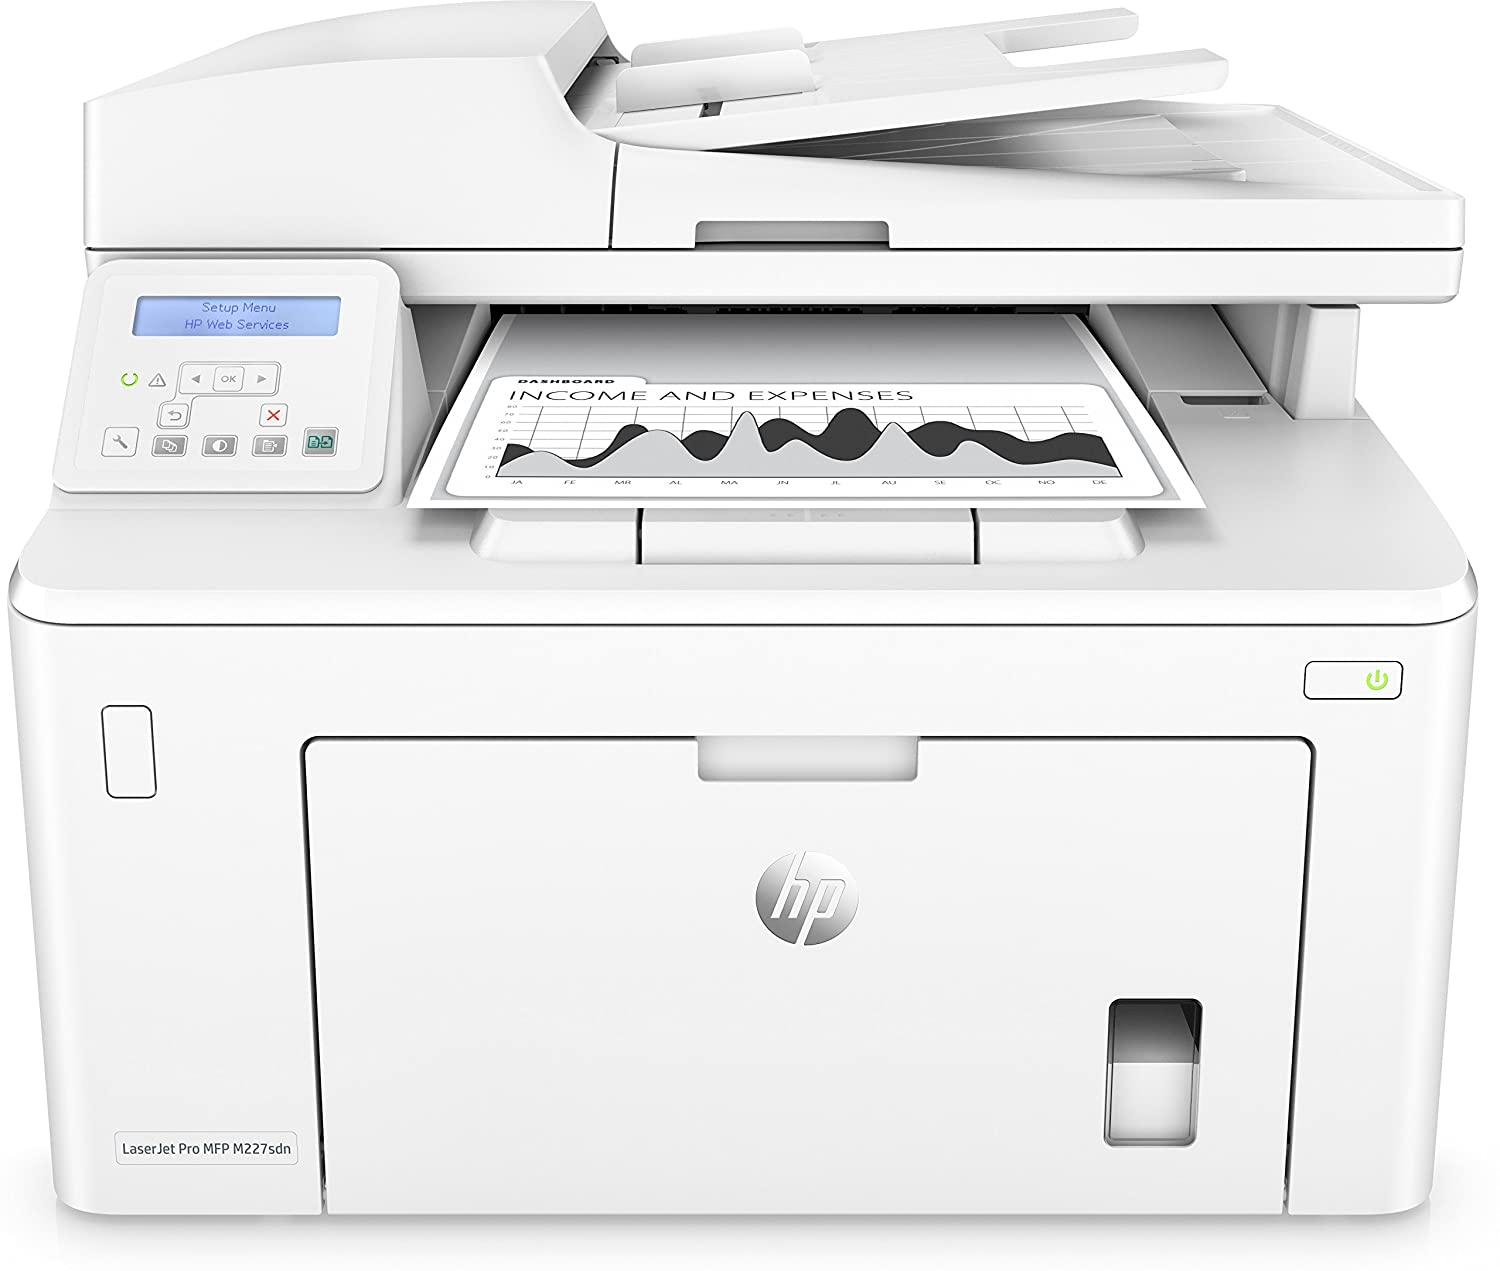 Buy Hp Laserjet Pro Mfp M227sdn Print Scan Copy Fax Comutronics Electronics Qa Duplex Network Online At Low Prices In India Reviews Ratings